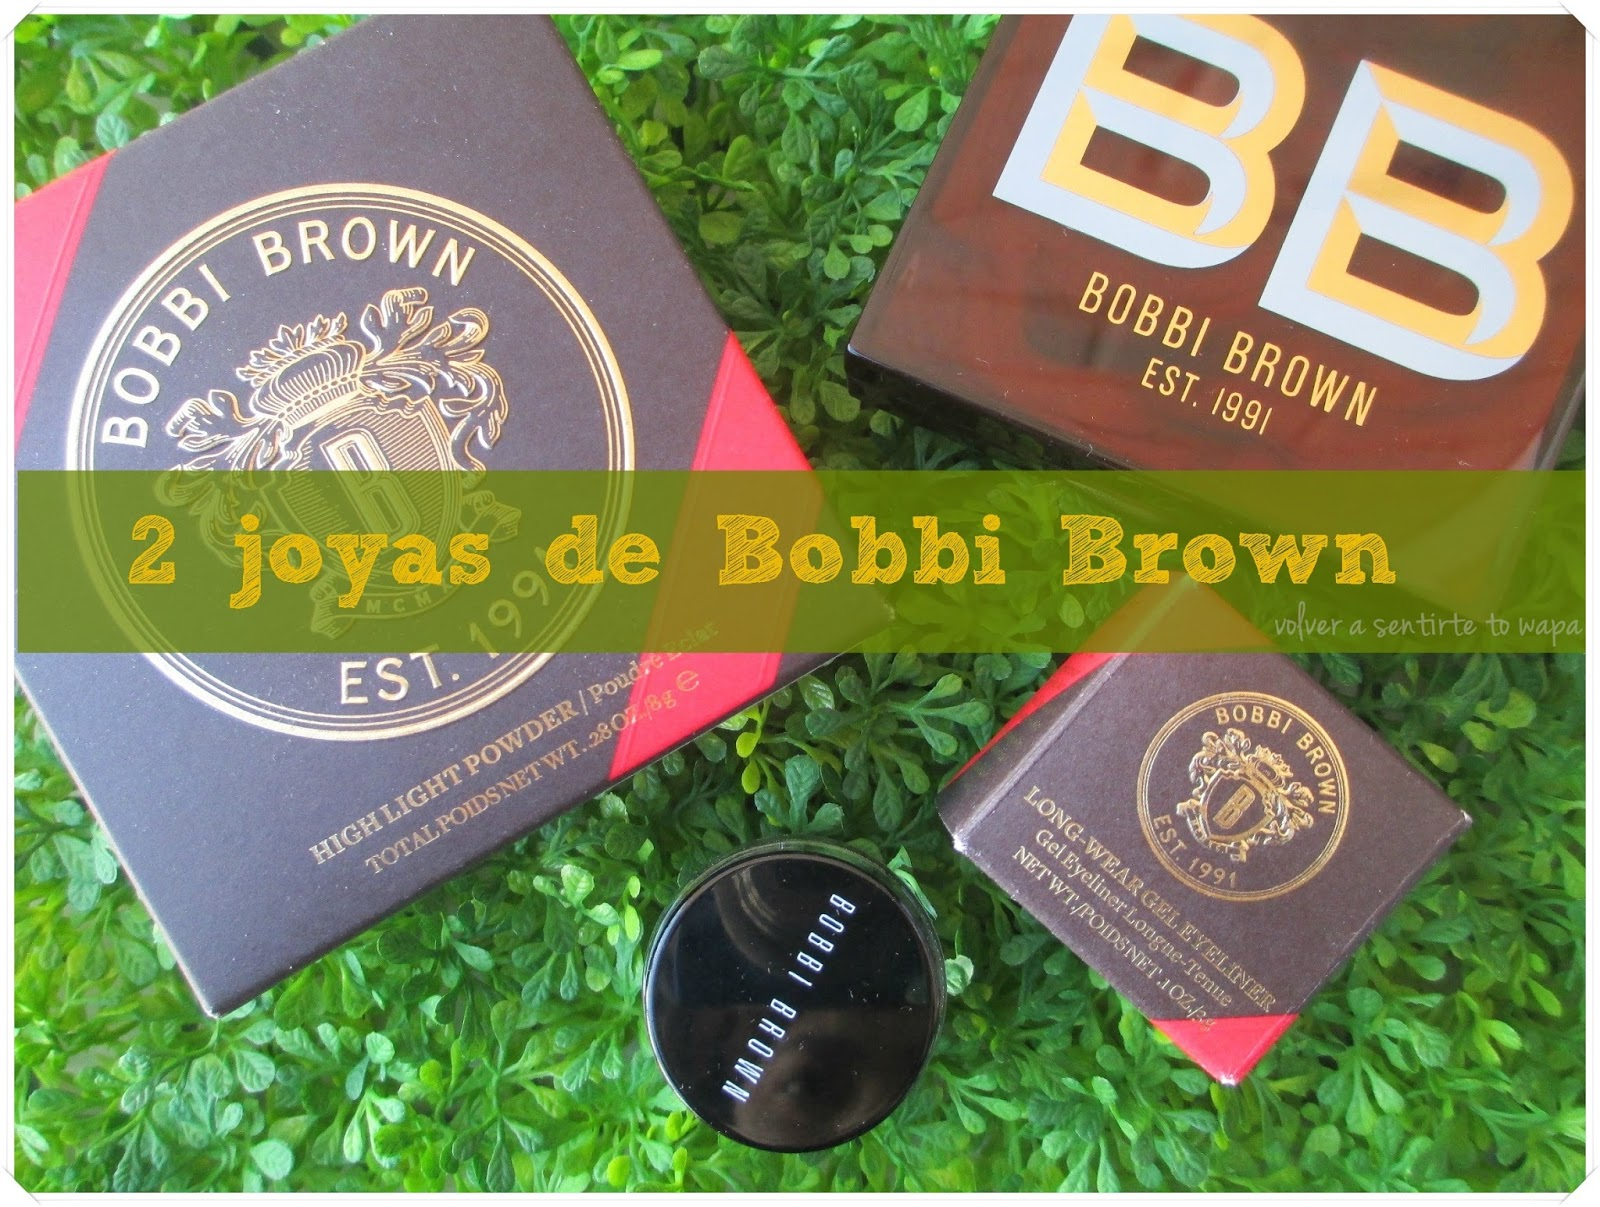 Bobbi Brown - Colección Scotch on the Rocks